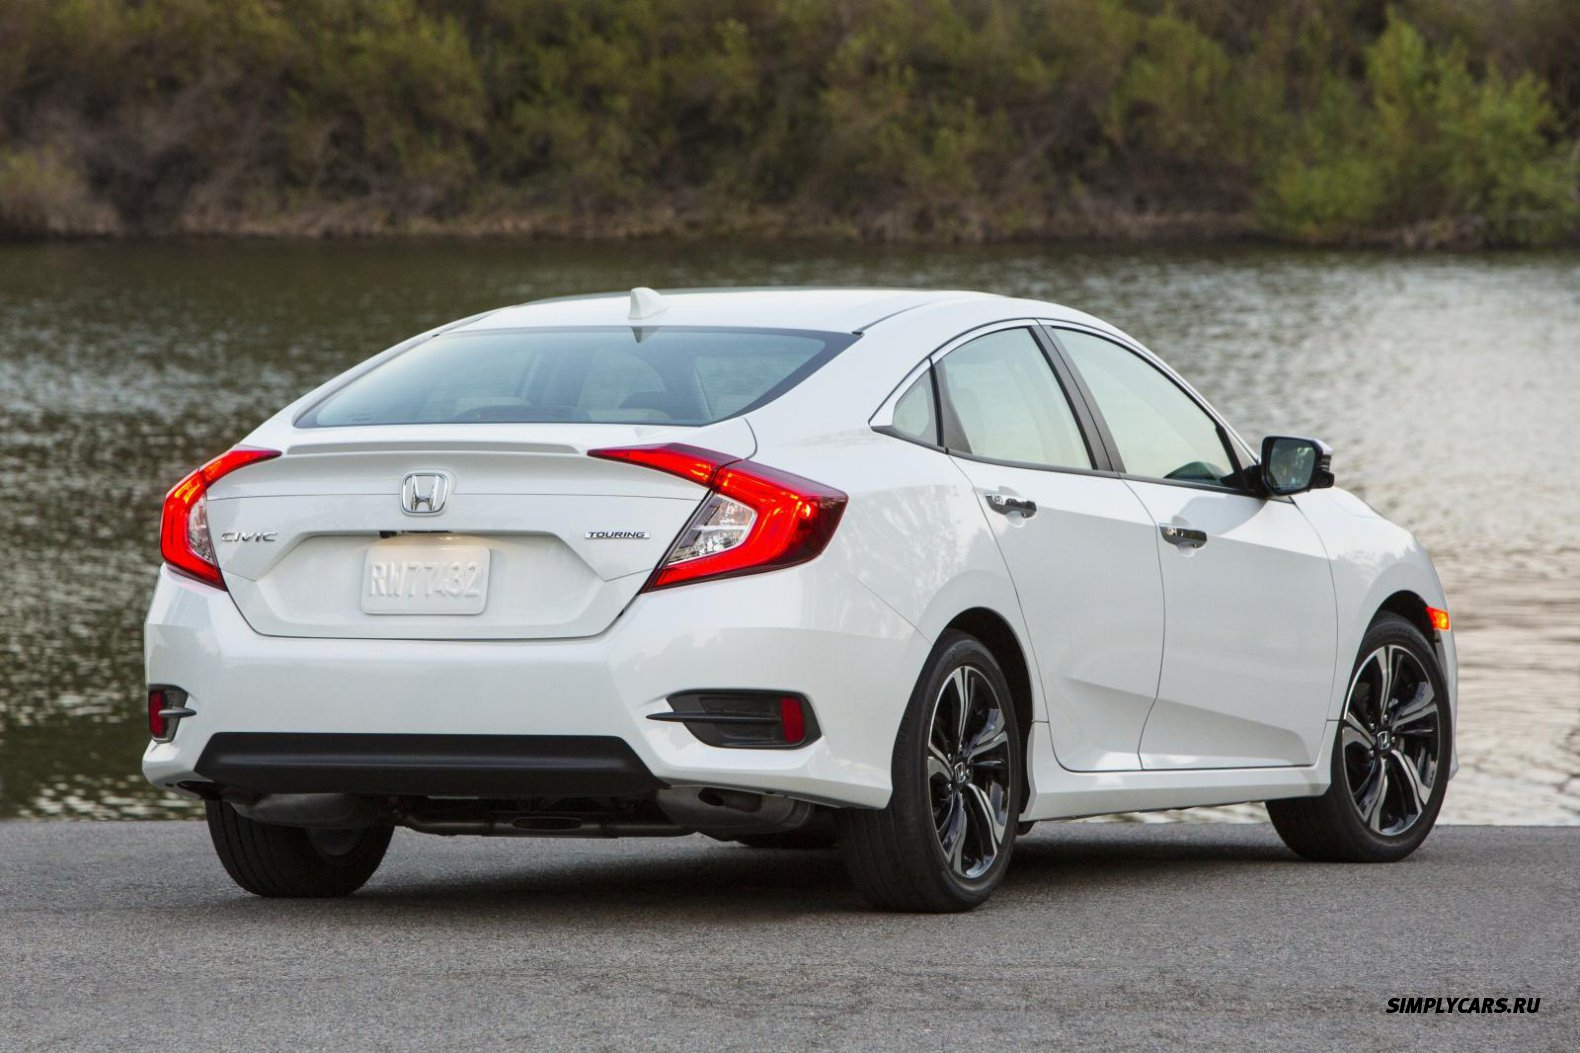 a review of honda civic the most popular compact car in united states